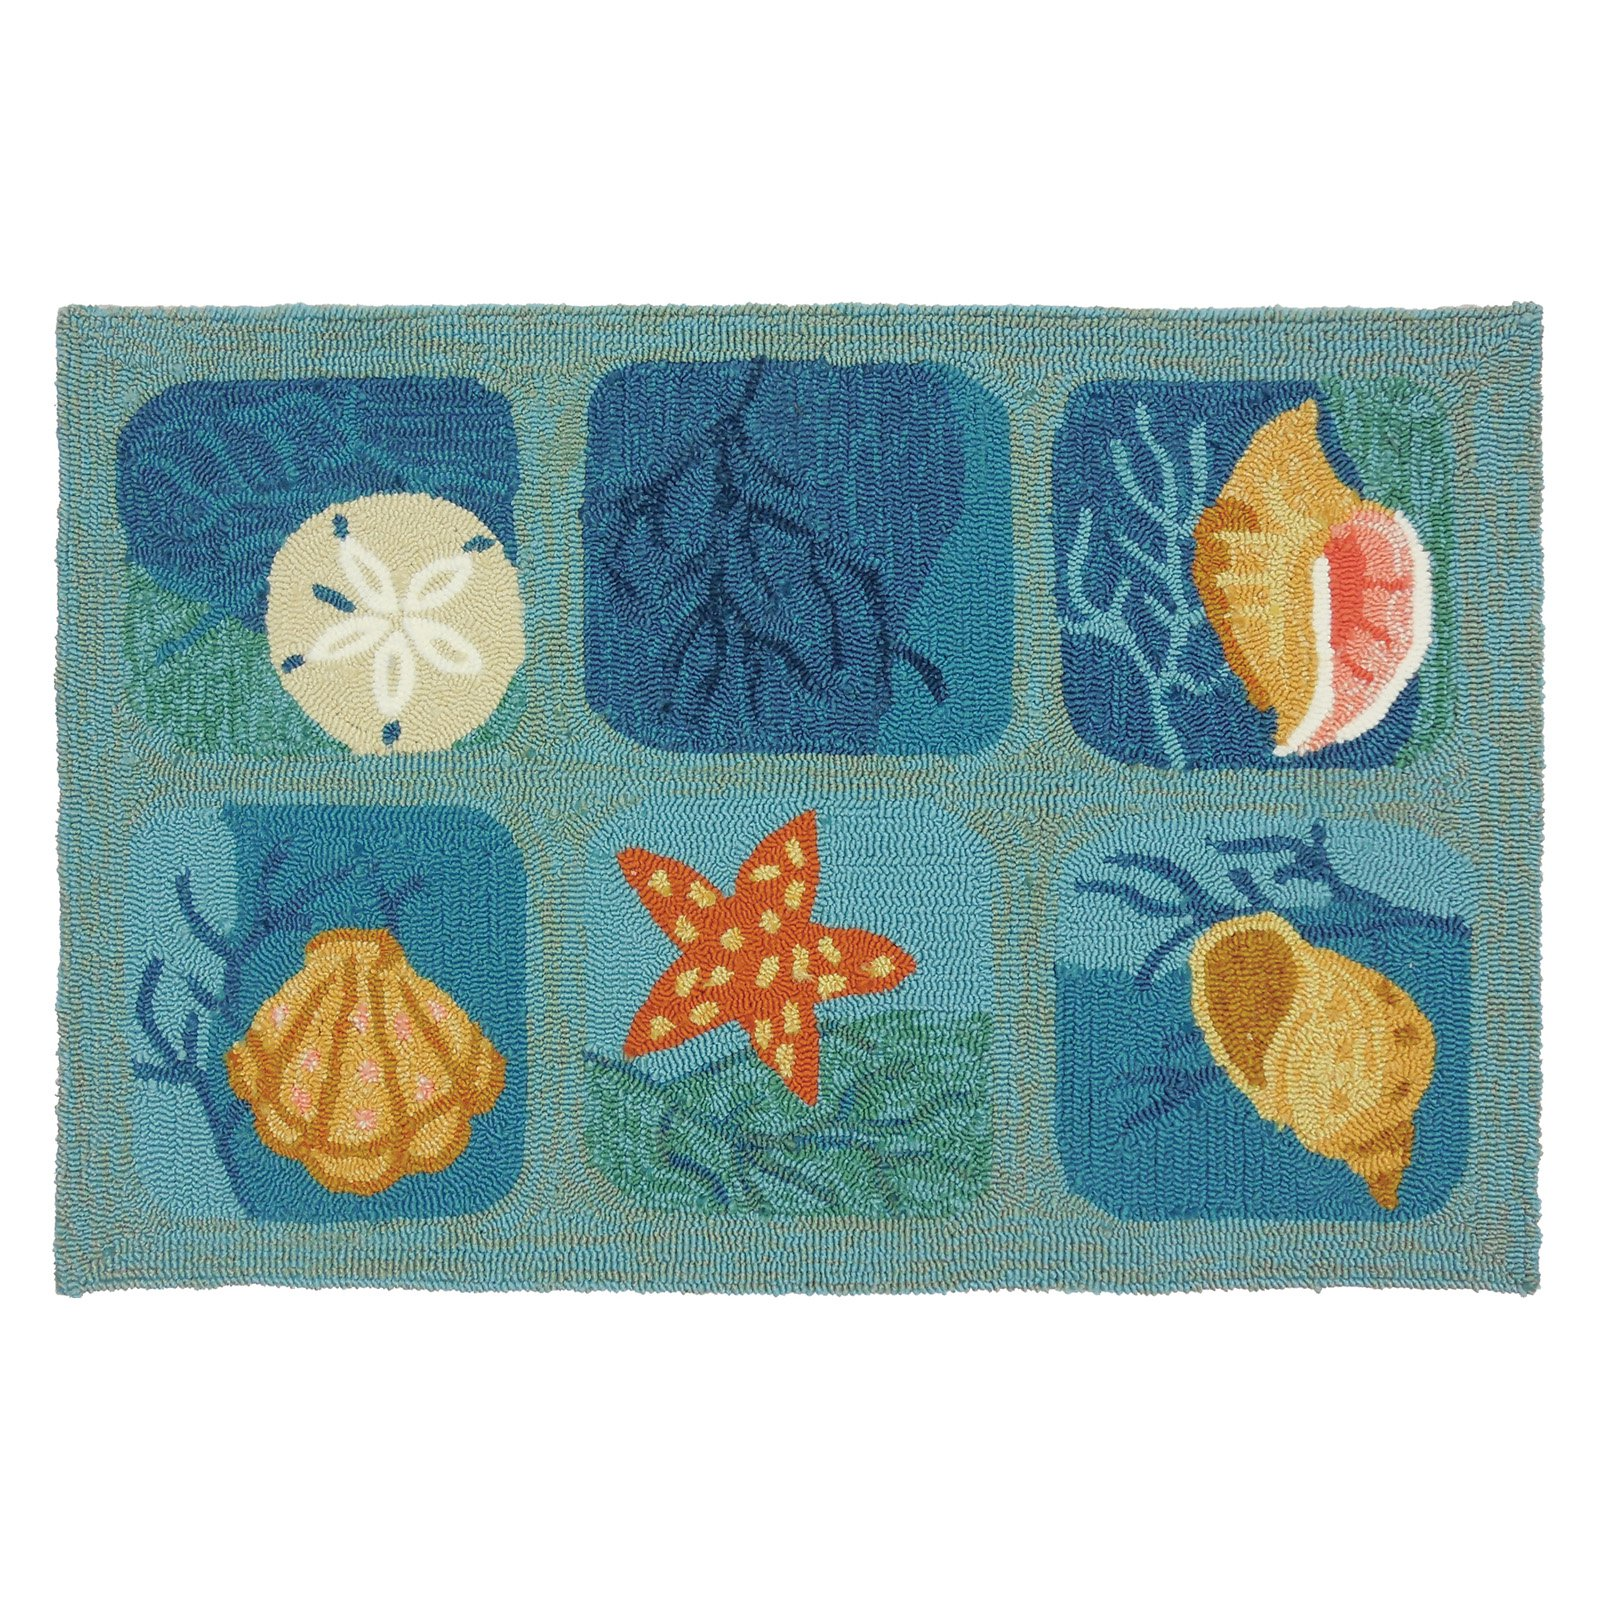 Homefires Shell Tile Indoor/Outdoor Accent Rug